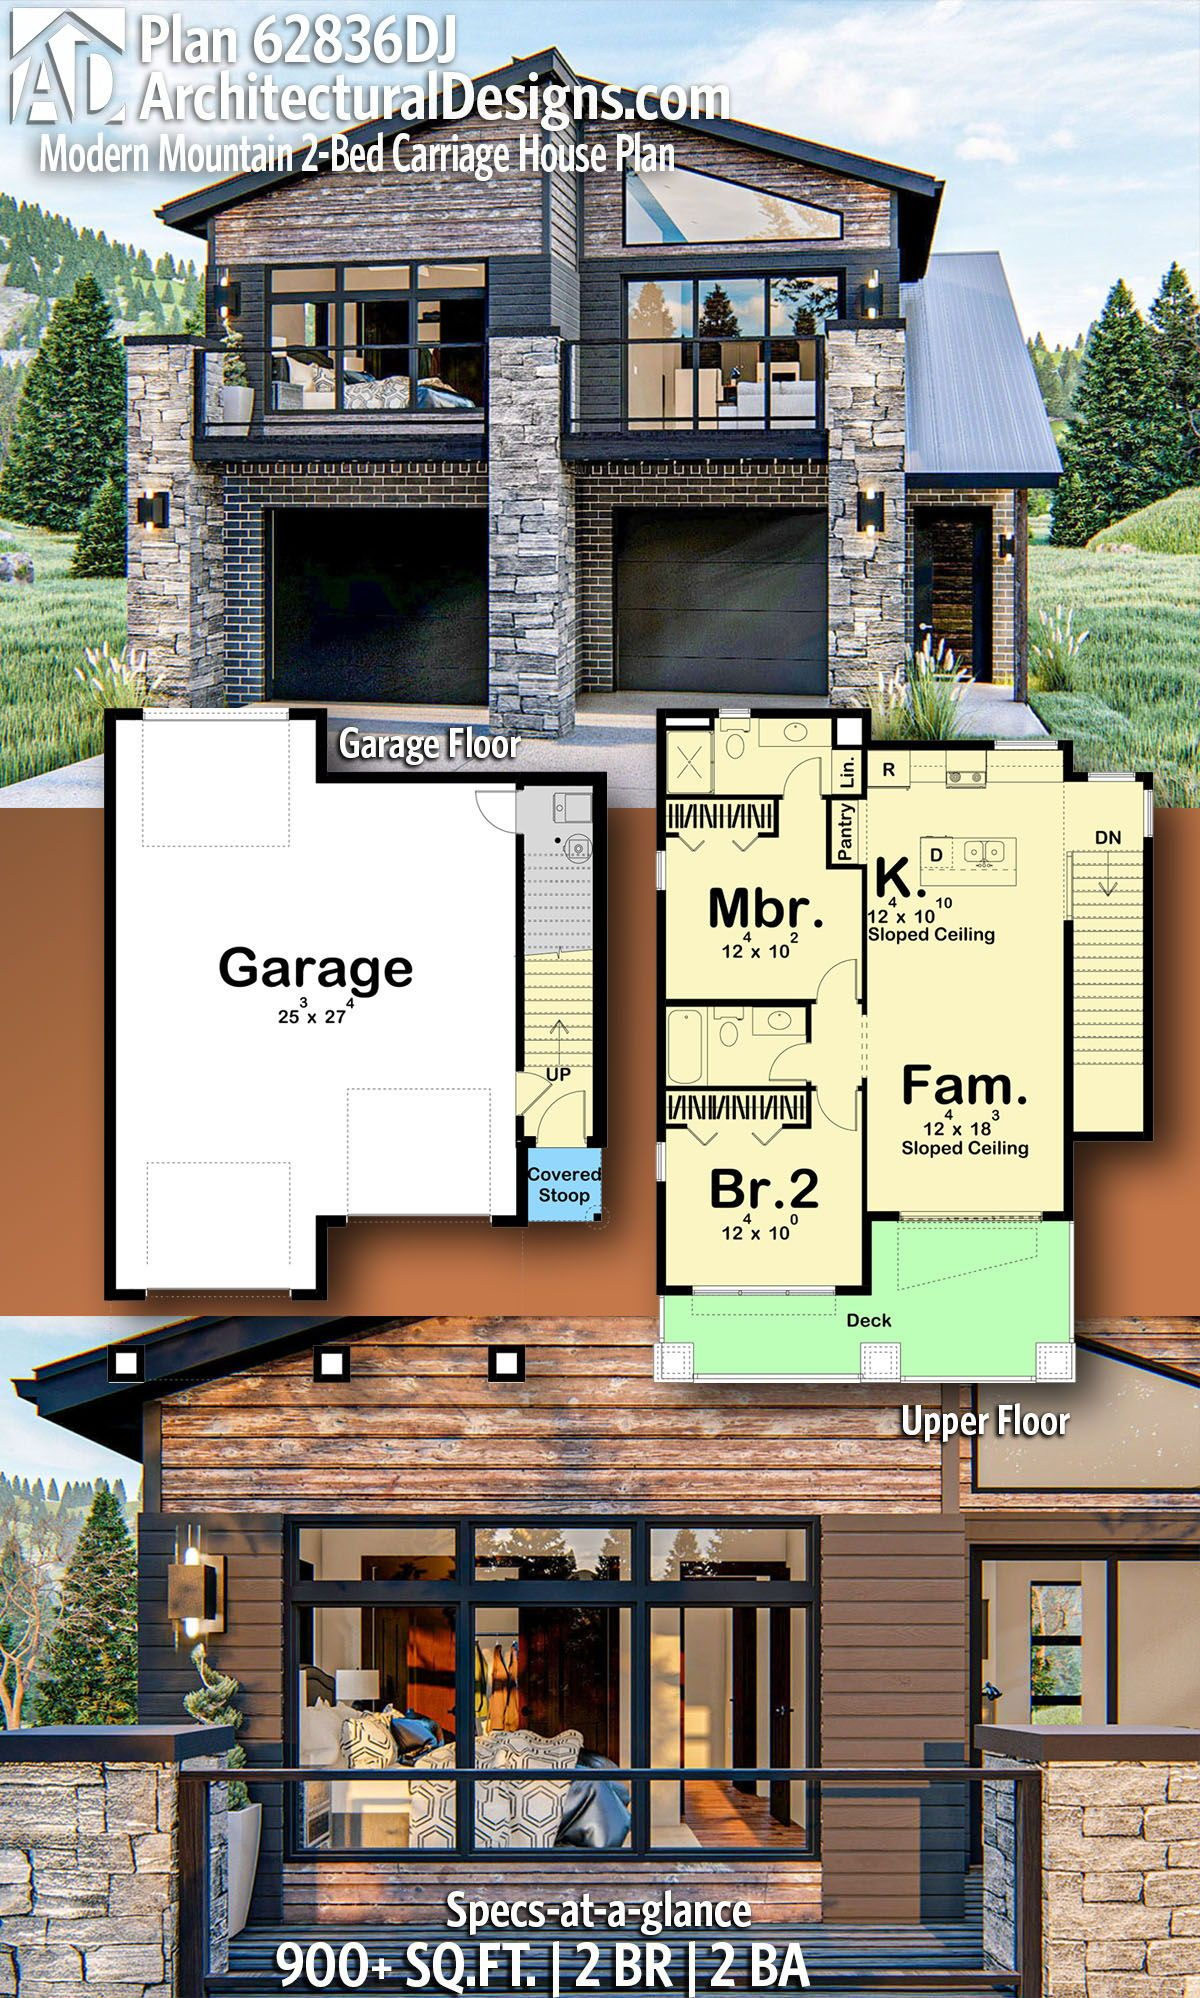 Plan 62836dj Modern Mountain 2 Bed Carriage House Plan In 2020 Carriage House Plans Garage Apartment Floor Plans Garage House Plans